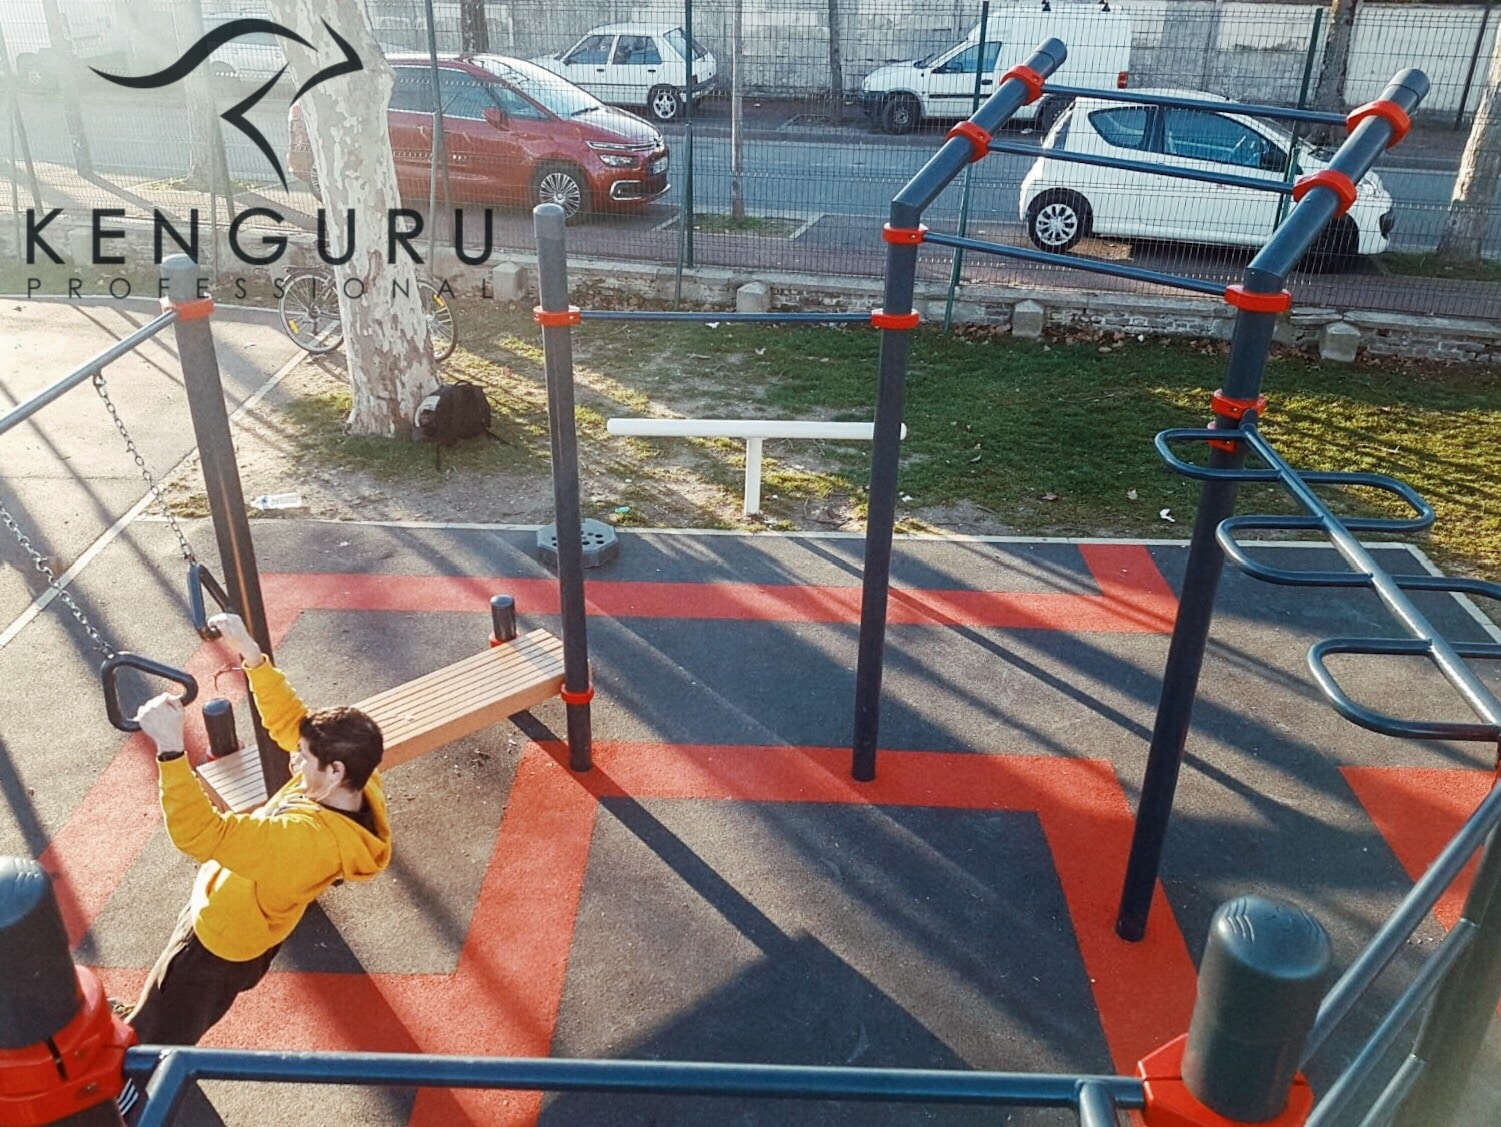 Kenguru Octagone street workout park in Paris